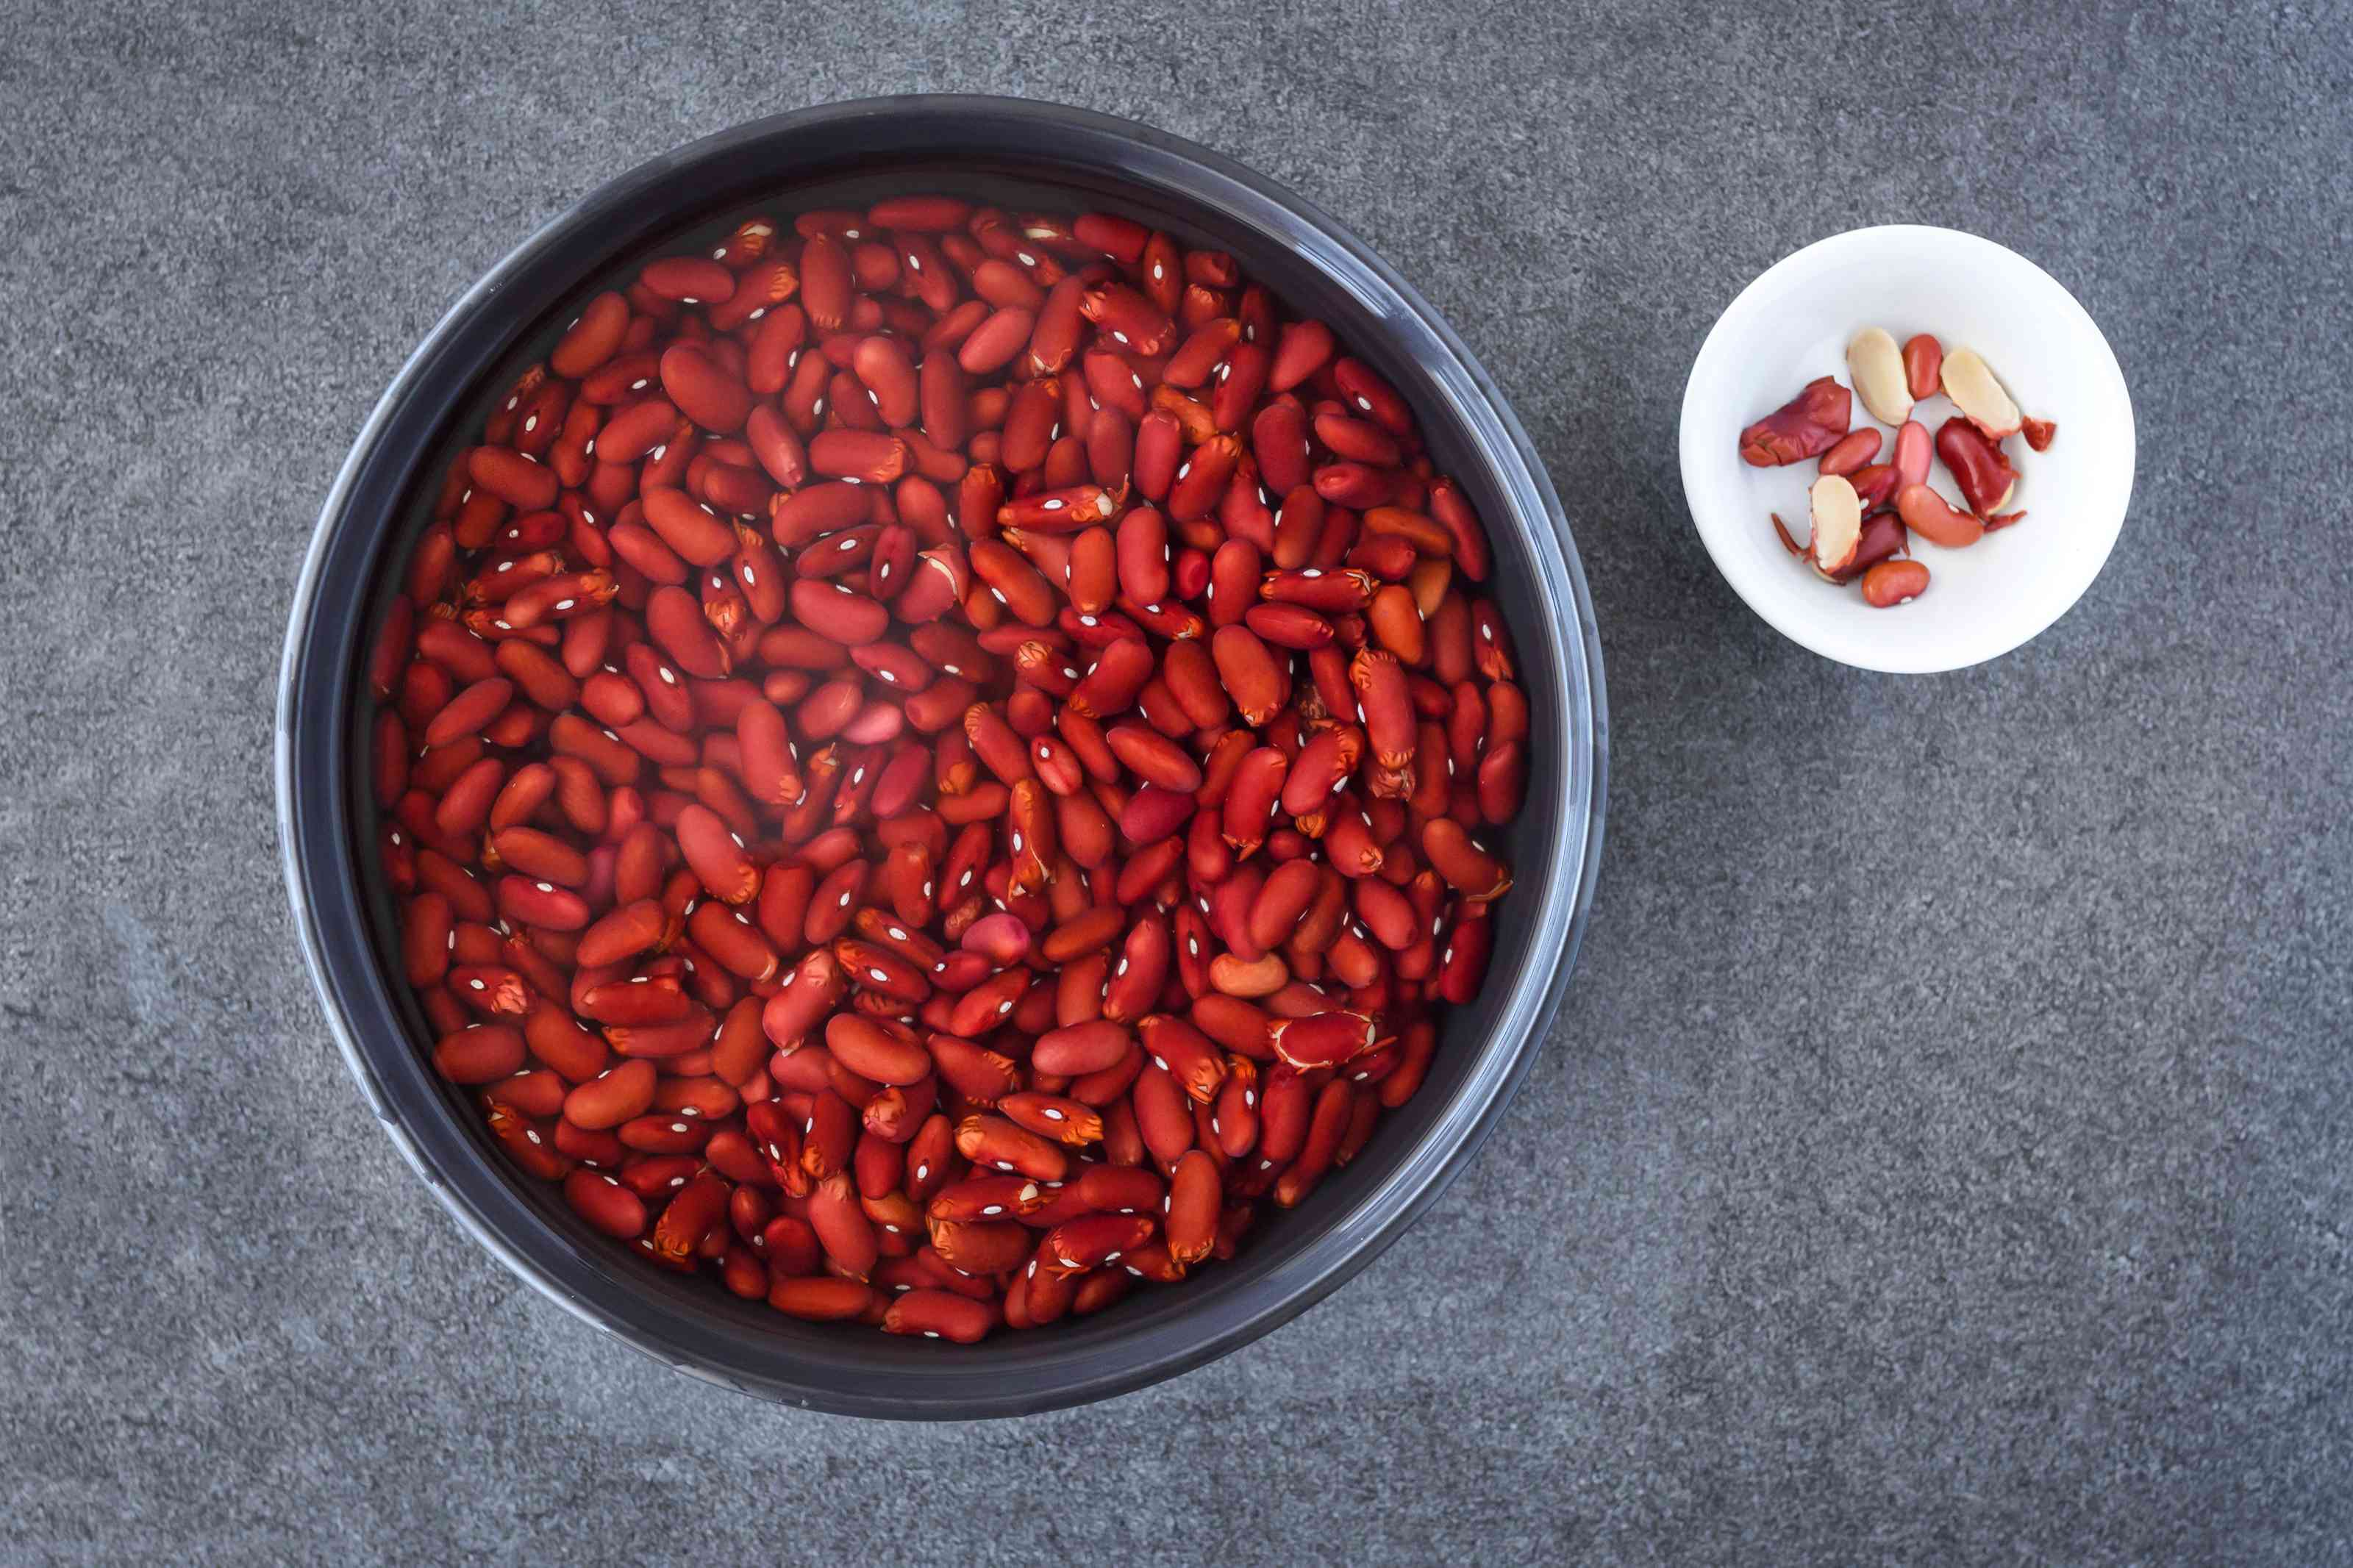 Put dried beans in a bowl